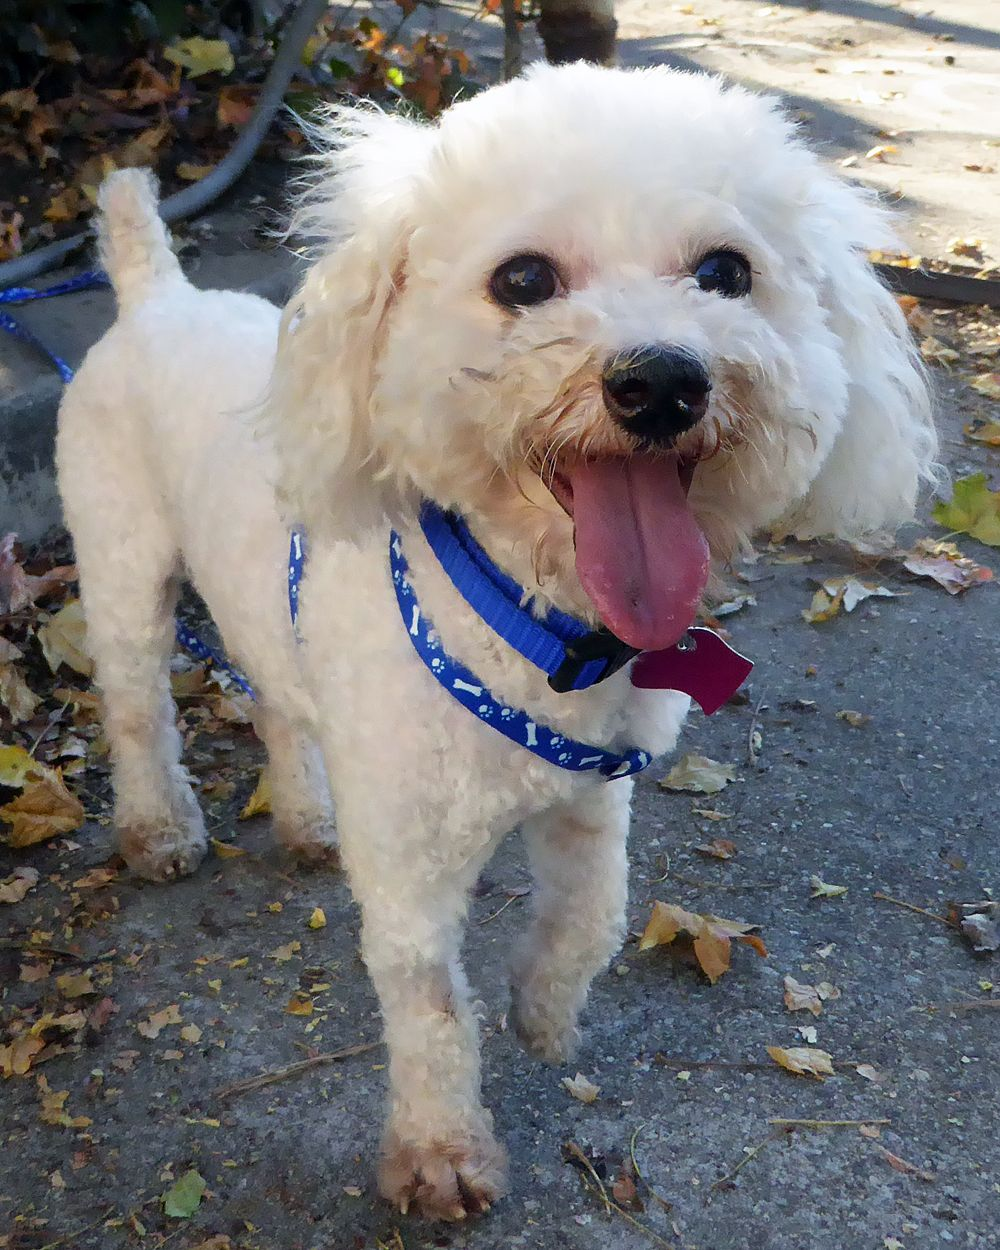 Poodle (Toy) dog for Adoption in Seattle, WA. ADN706137